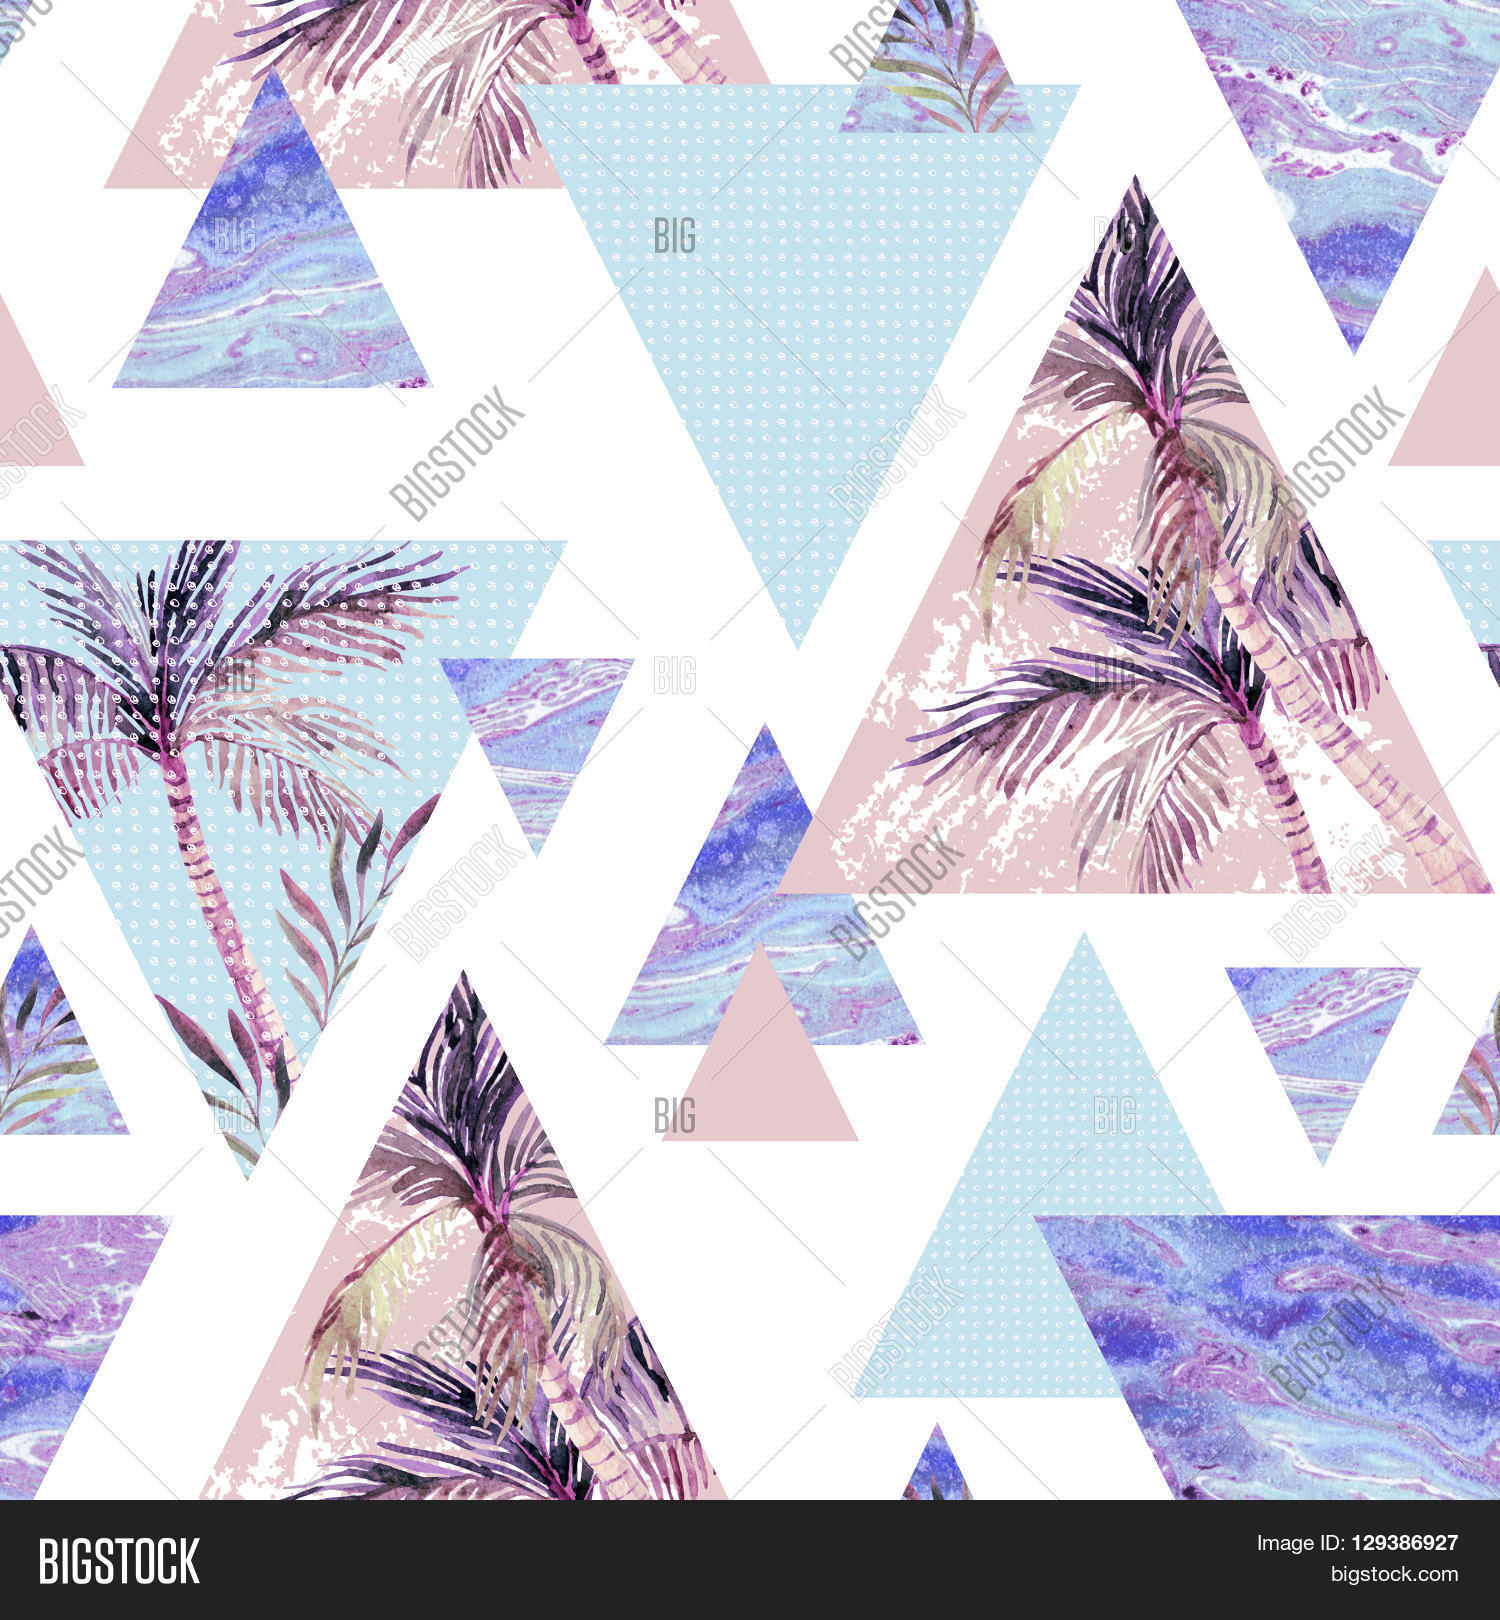 Vintage Beach Background Stock Photo 112981333: Abstract Summer Image & Photo (Free Trial)